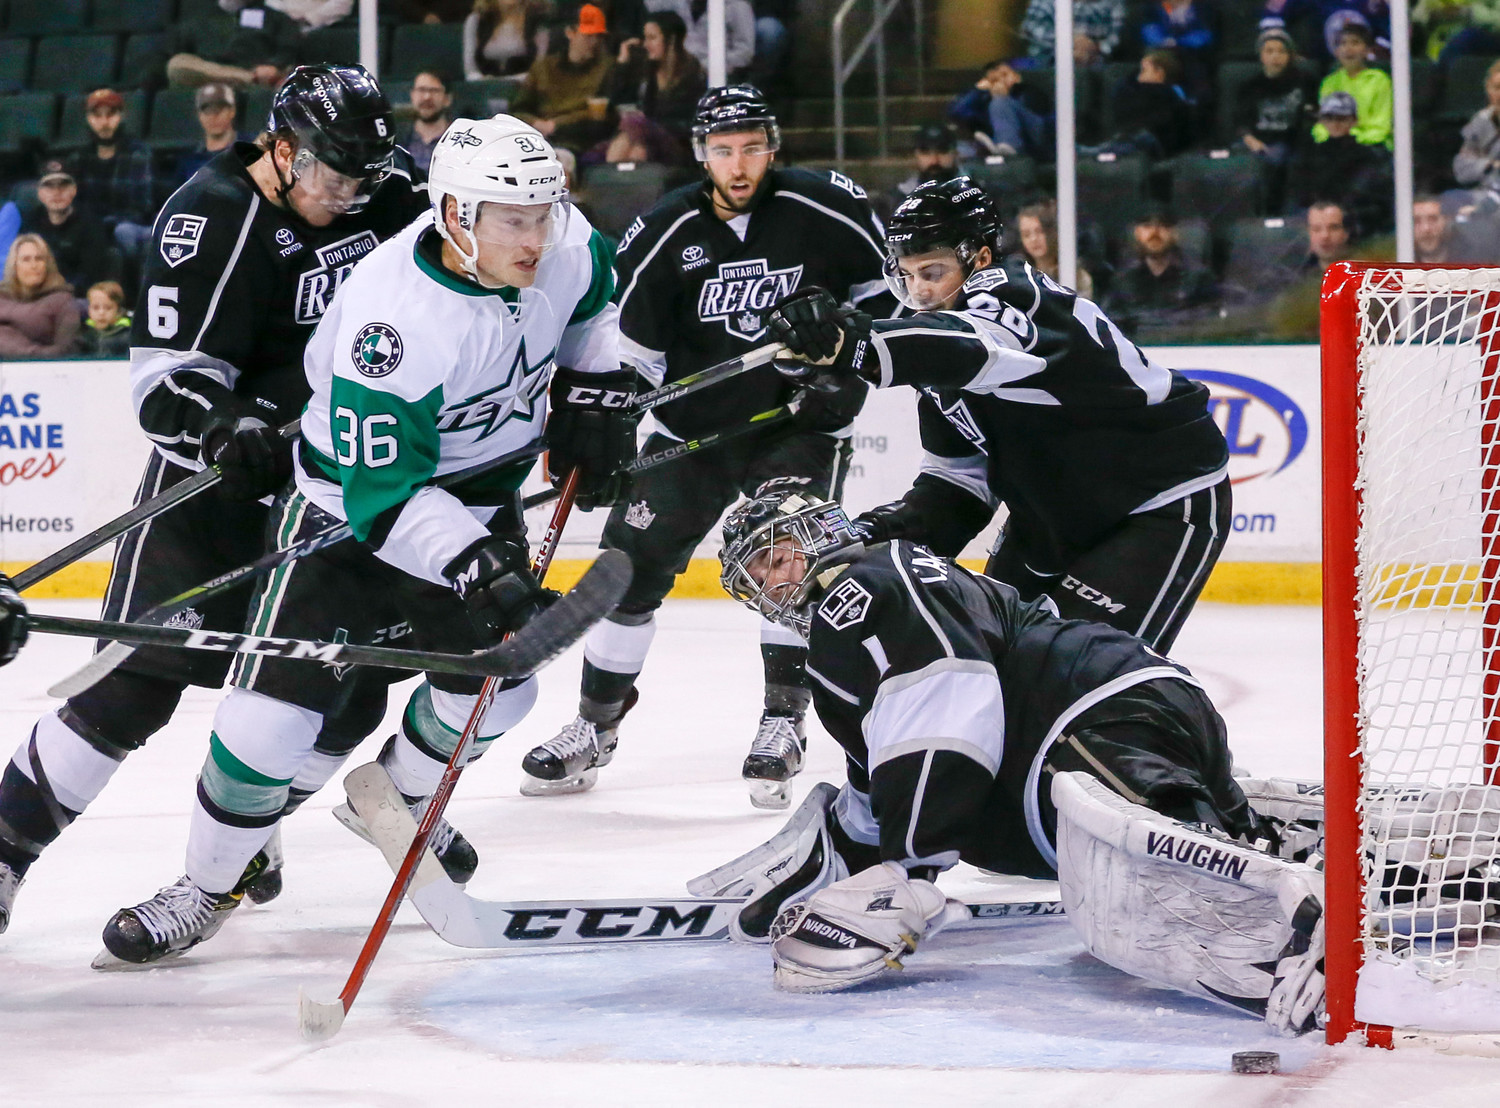 Mark McNeill scored a goal, but the Stars lost to the Ontario Reign 4-2 Wednesday night. Texas faces the Cleveland Monsters Saturday at 7 p.m.